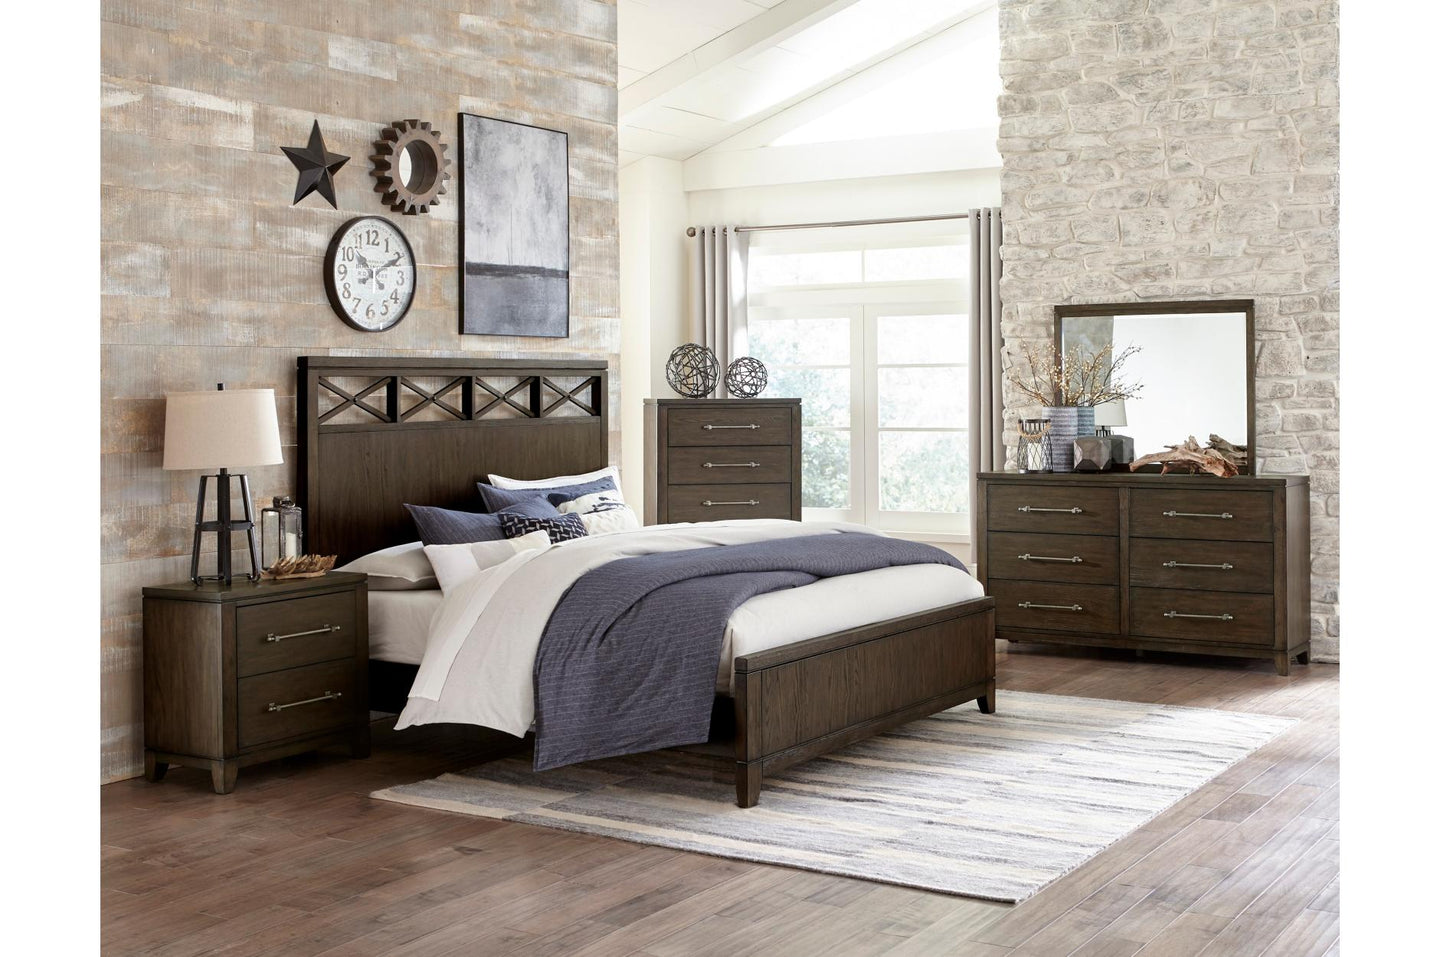 Homelegance Griggs Gray Wood Finish 4 Piece Eastern King Bedroom Set